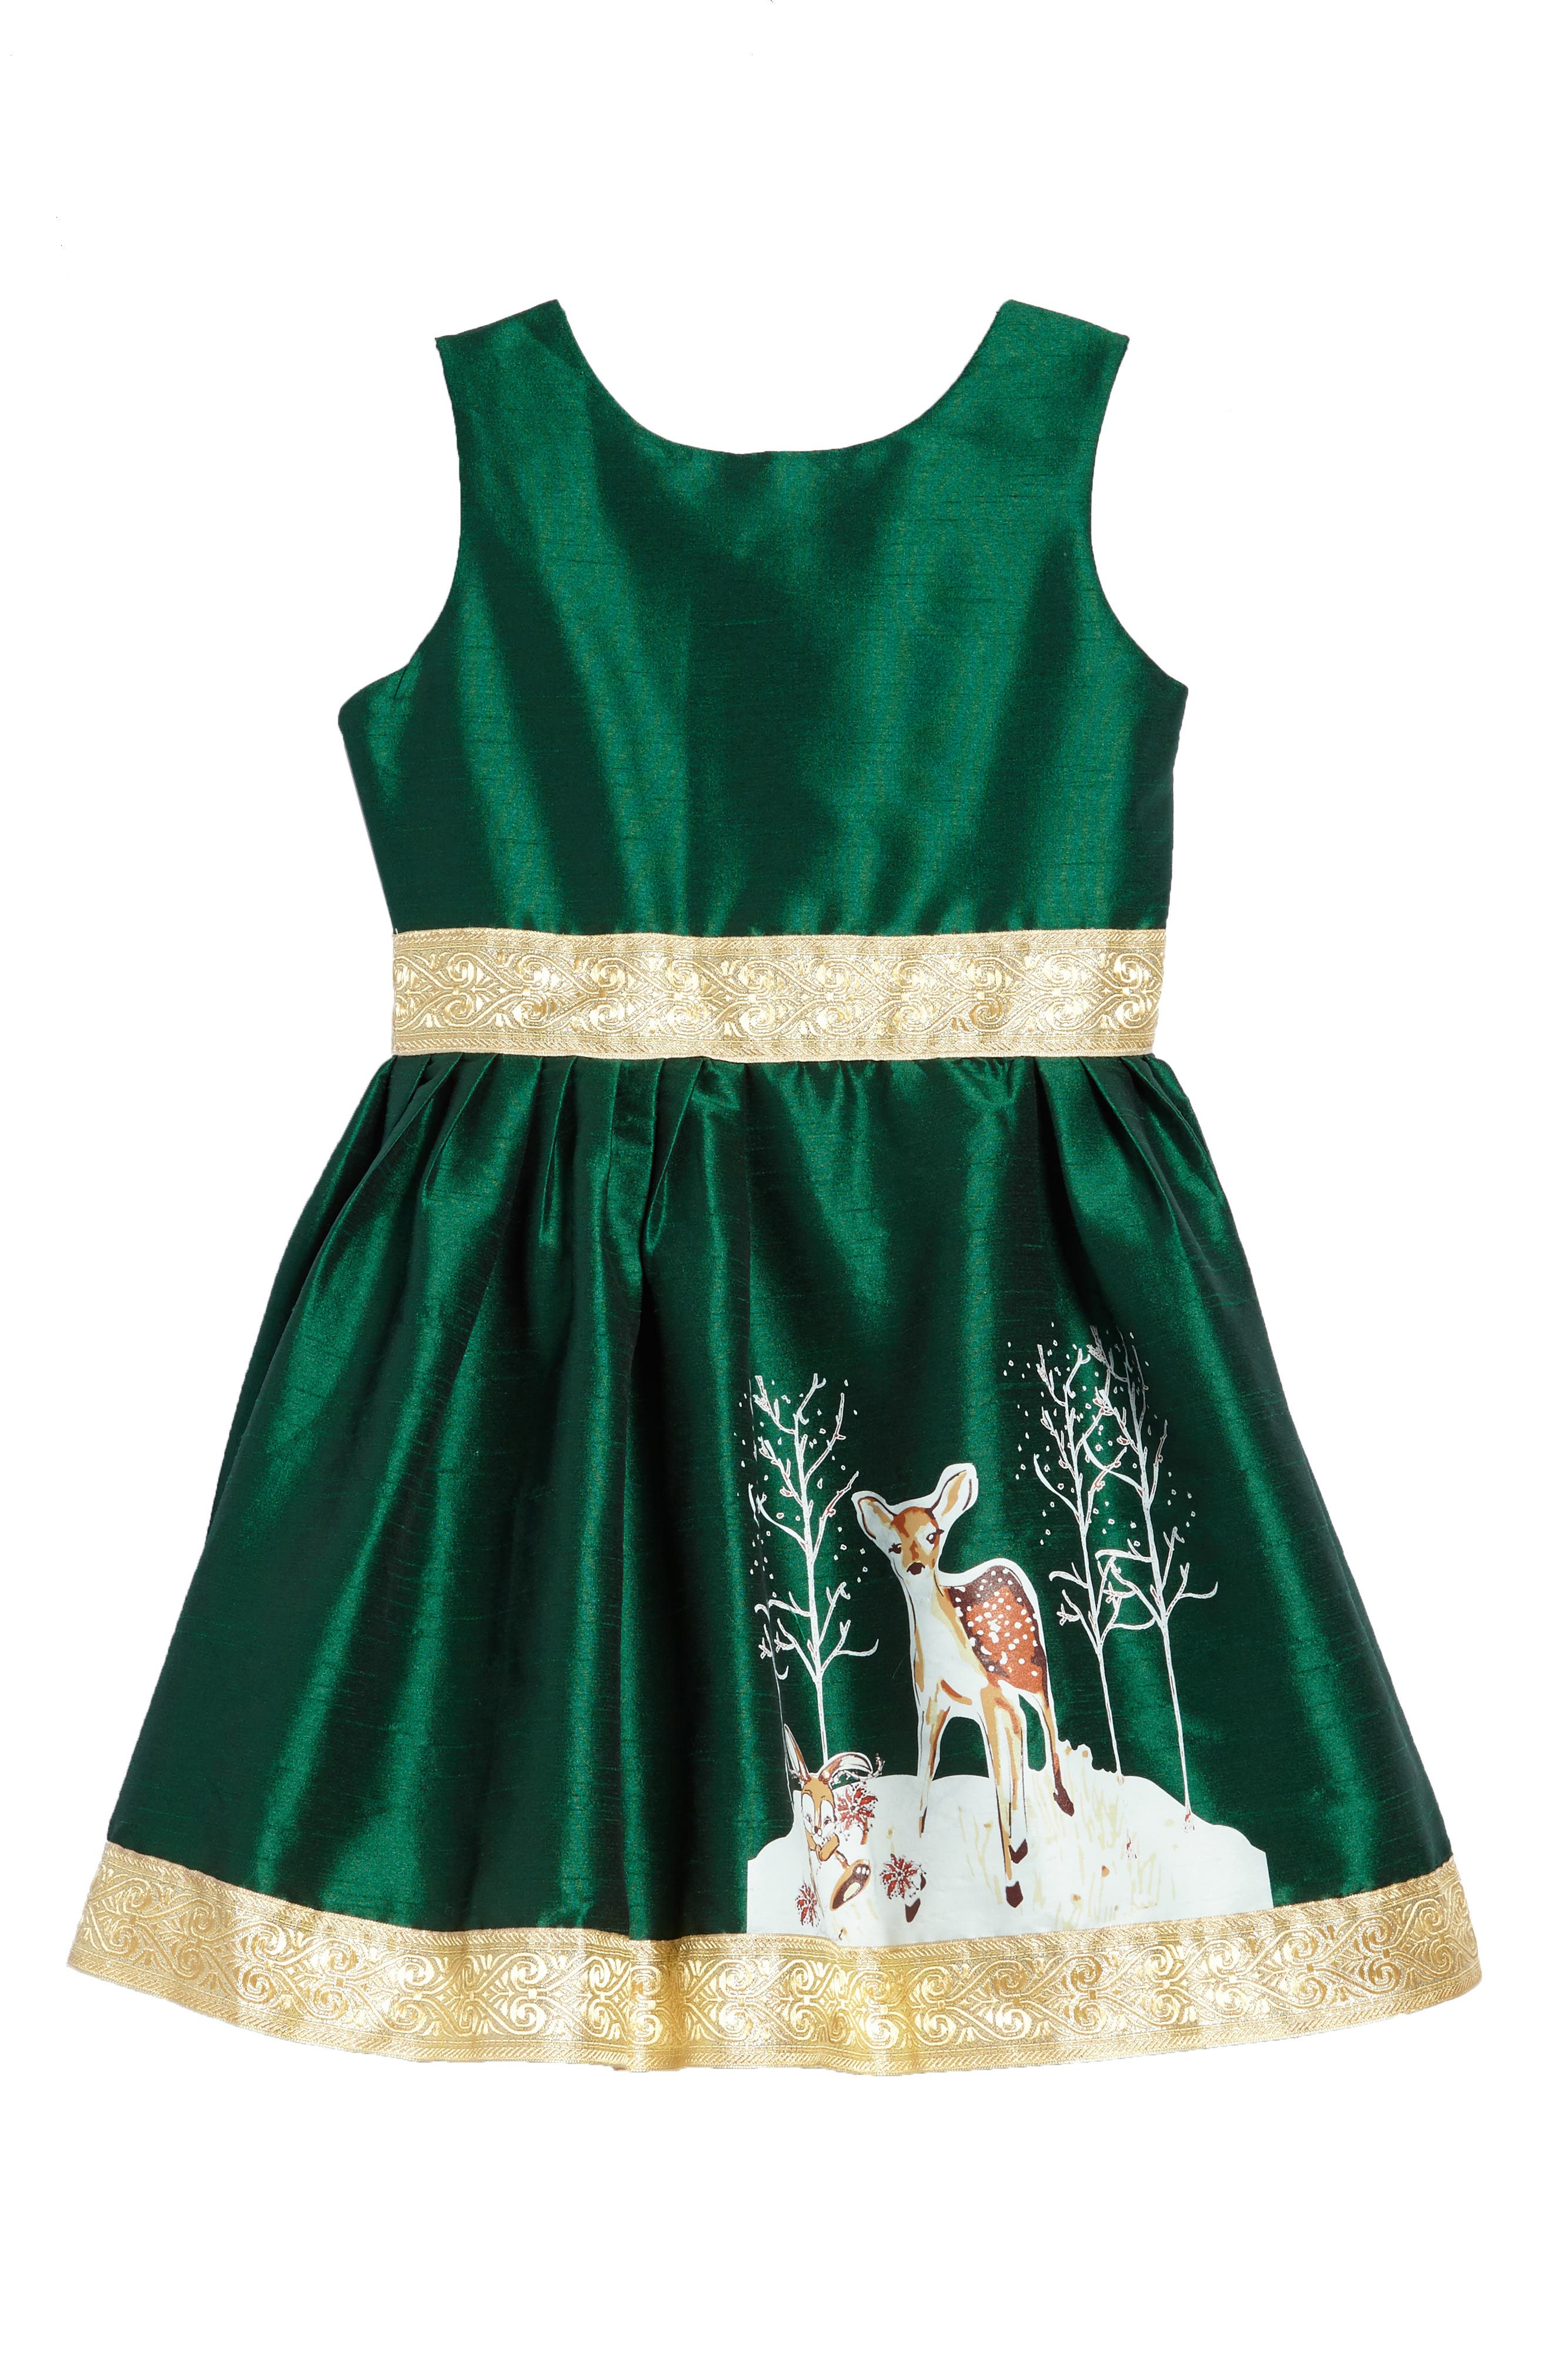 Fawn of Winter Dress,                         Main,                         color,